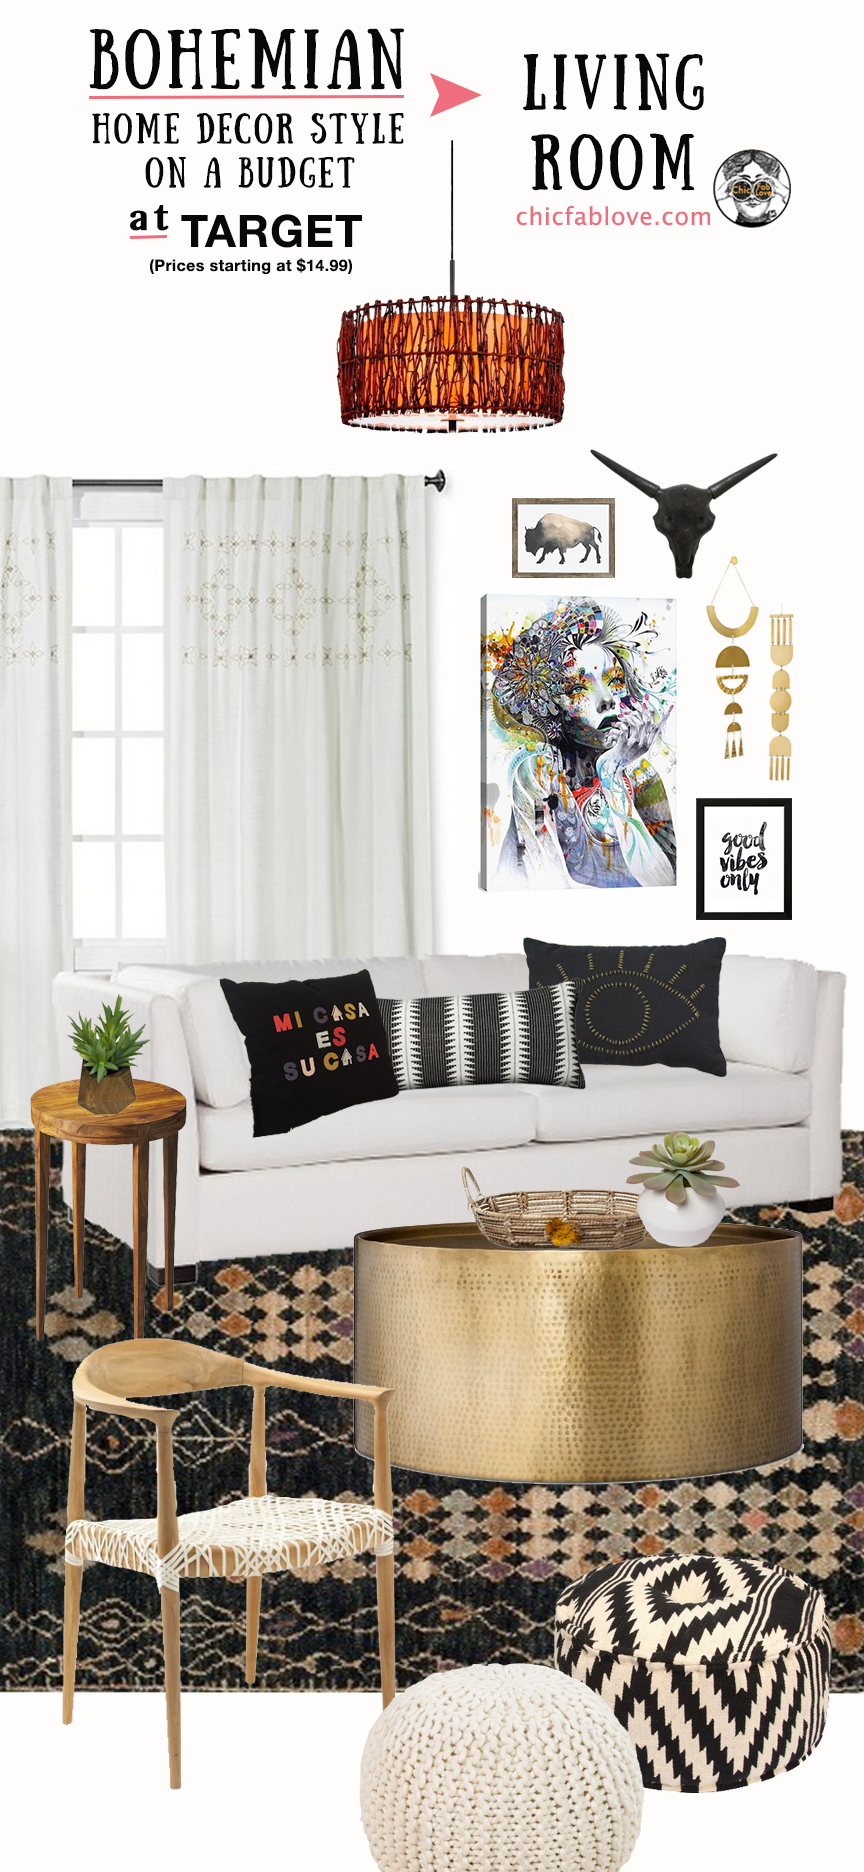 Bohemian Home Decor Style On A Budget At Target Chic Fab Love